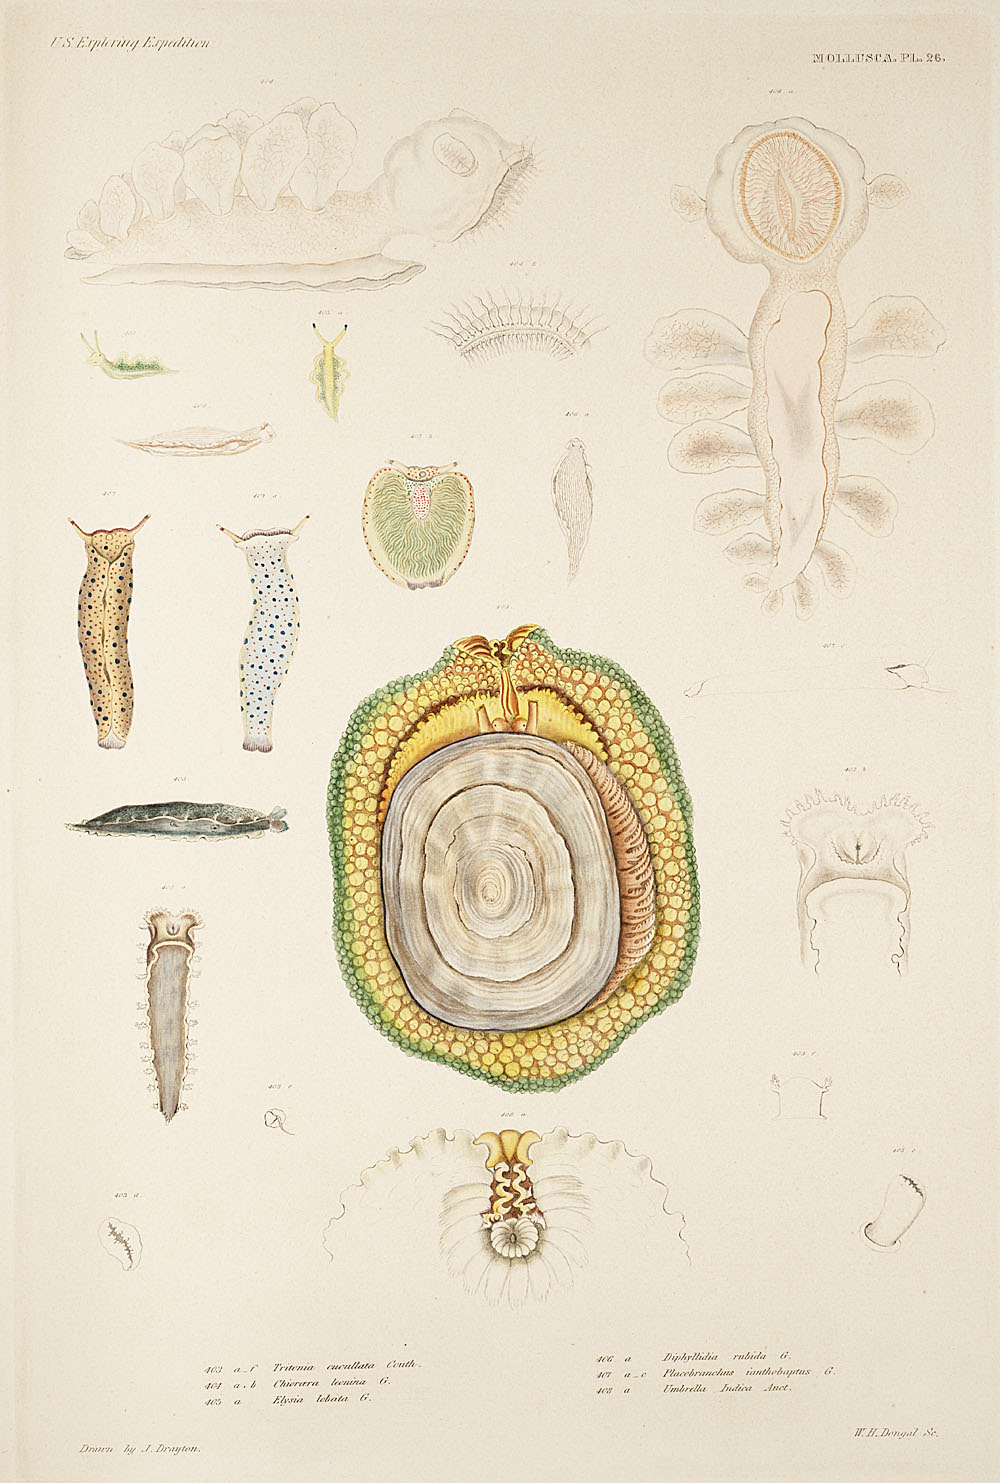 Mollusca, Pl. 26,  Image number:sil19-18-073b